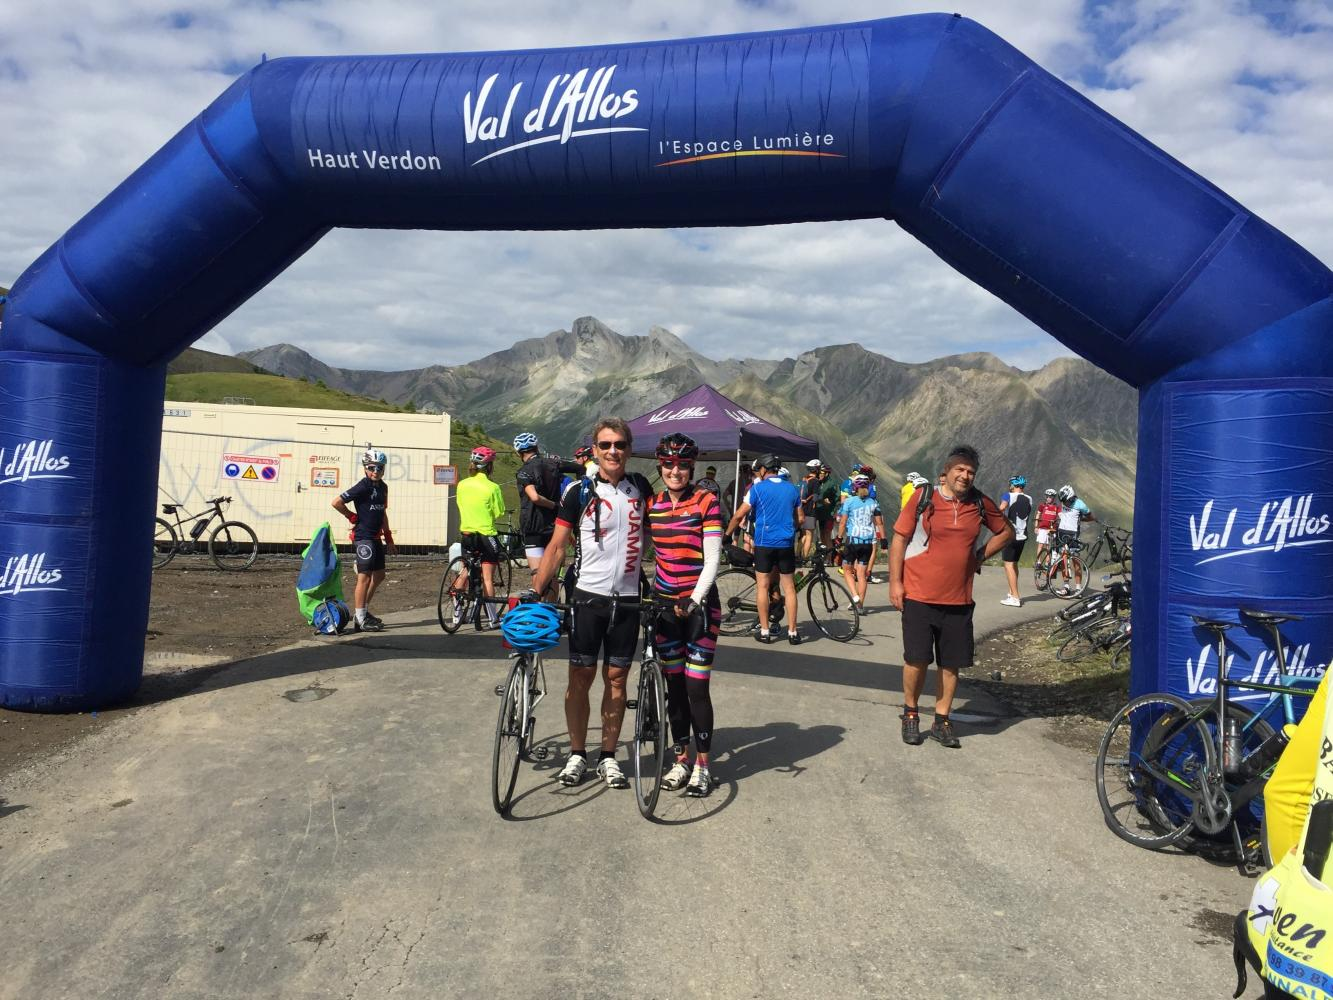 Col d'Allos - Barcelonnette Bike Climb - PJAMM Cycling